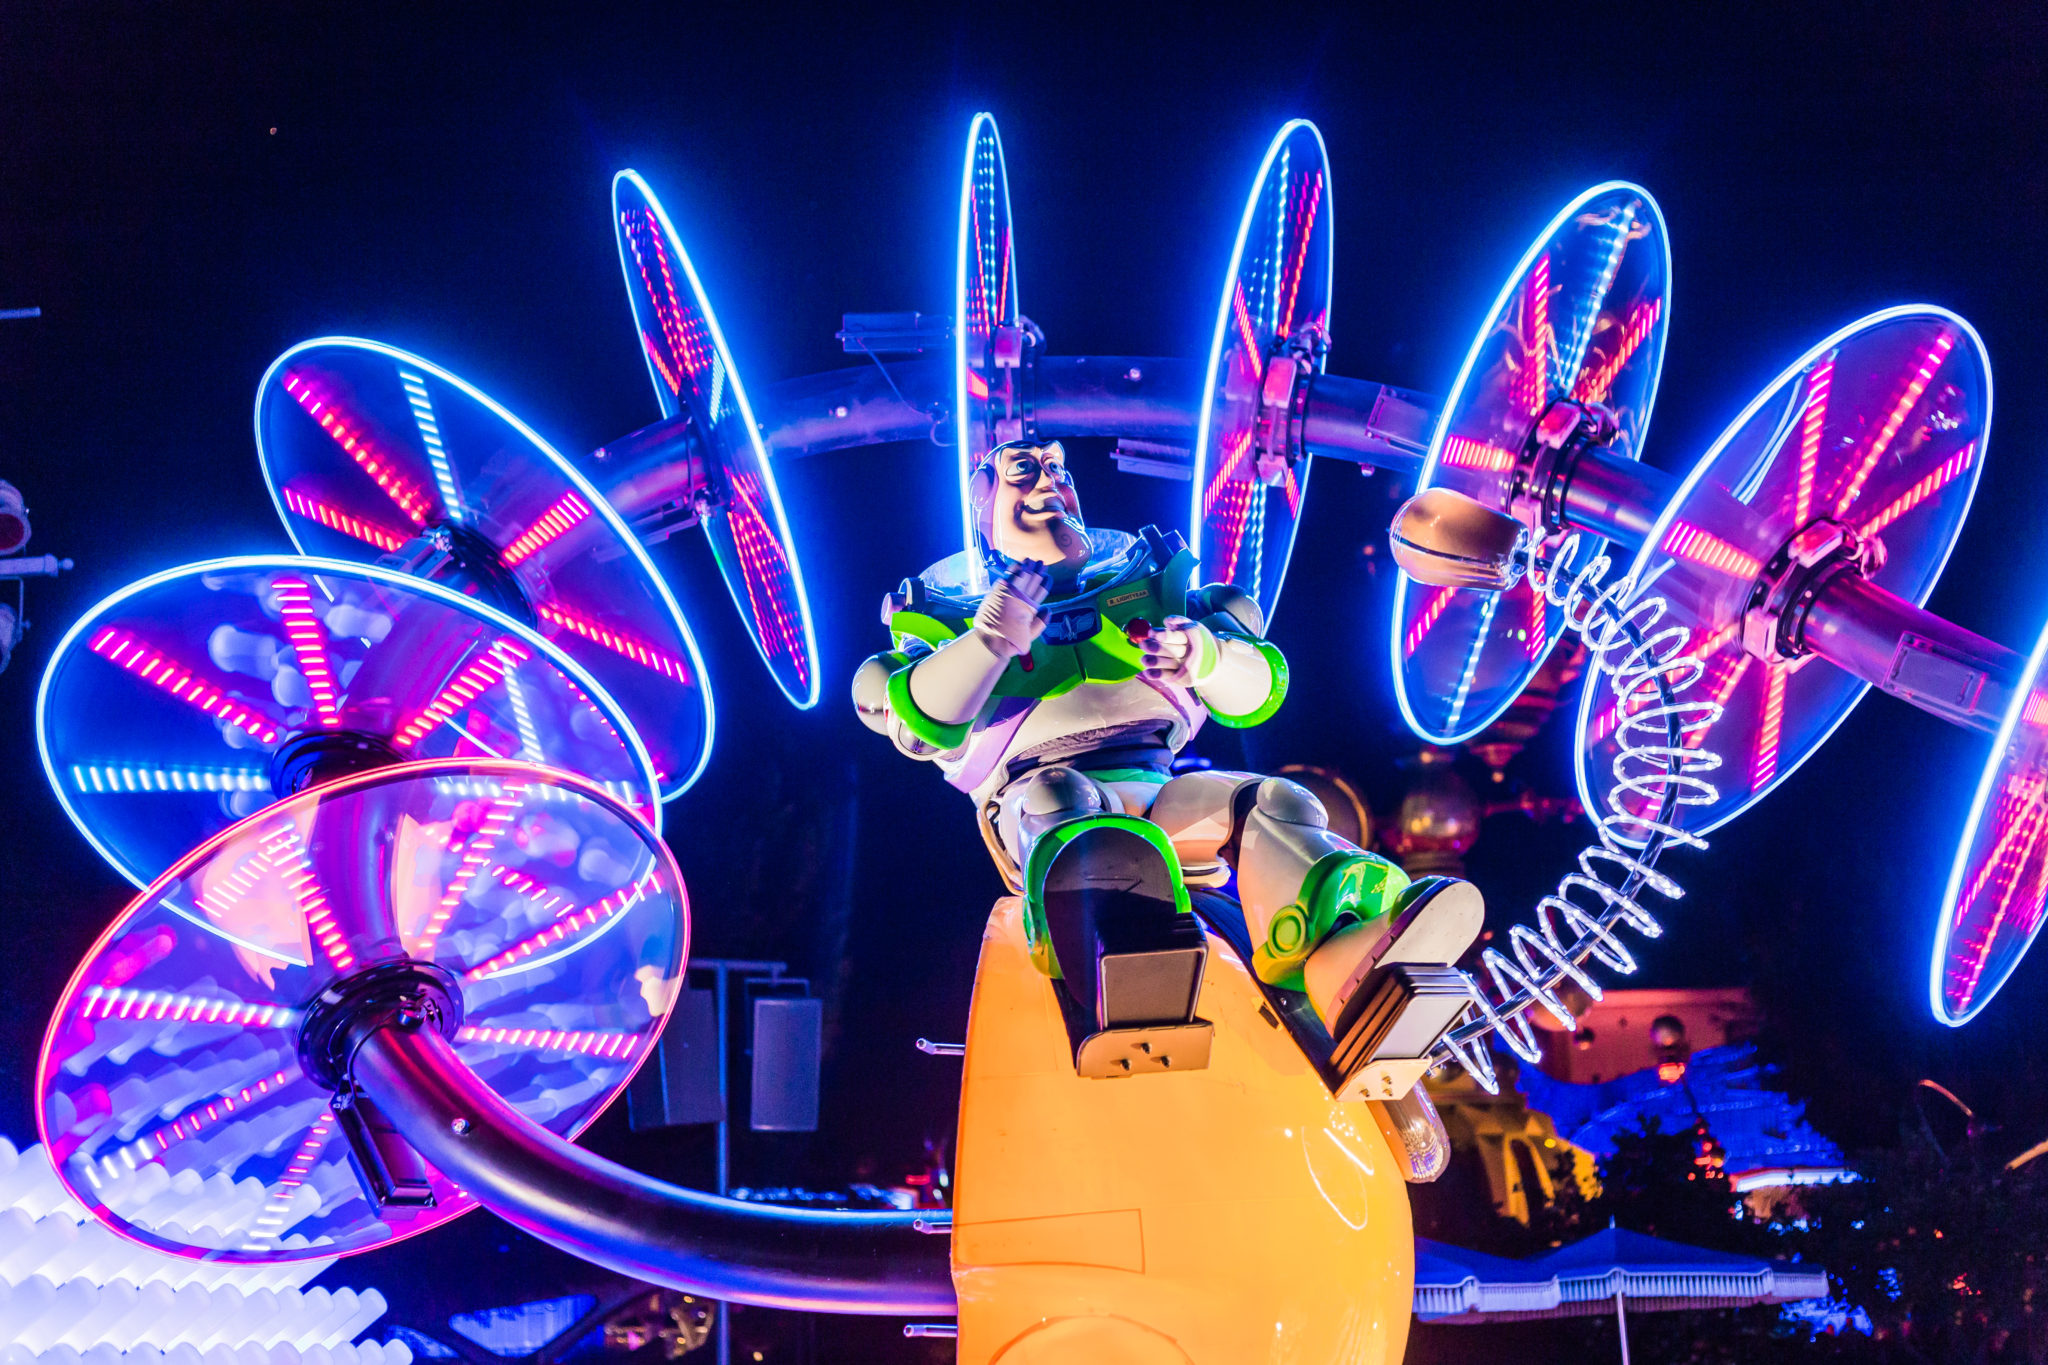 Photo of Buzz Lightyear during the Disneyland Night Parade in Los Angeles, Californie, USA